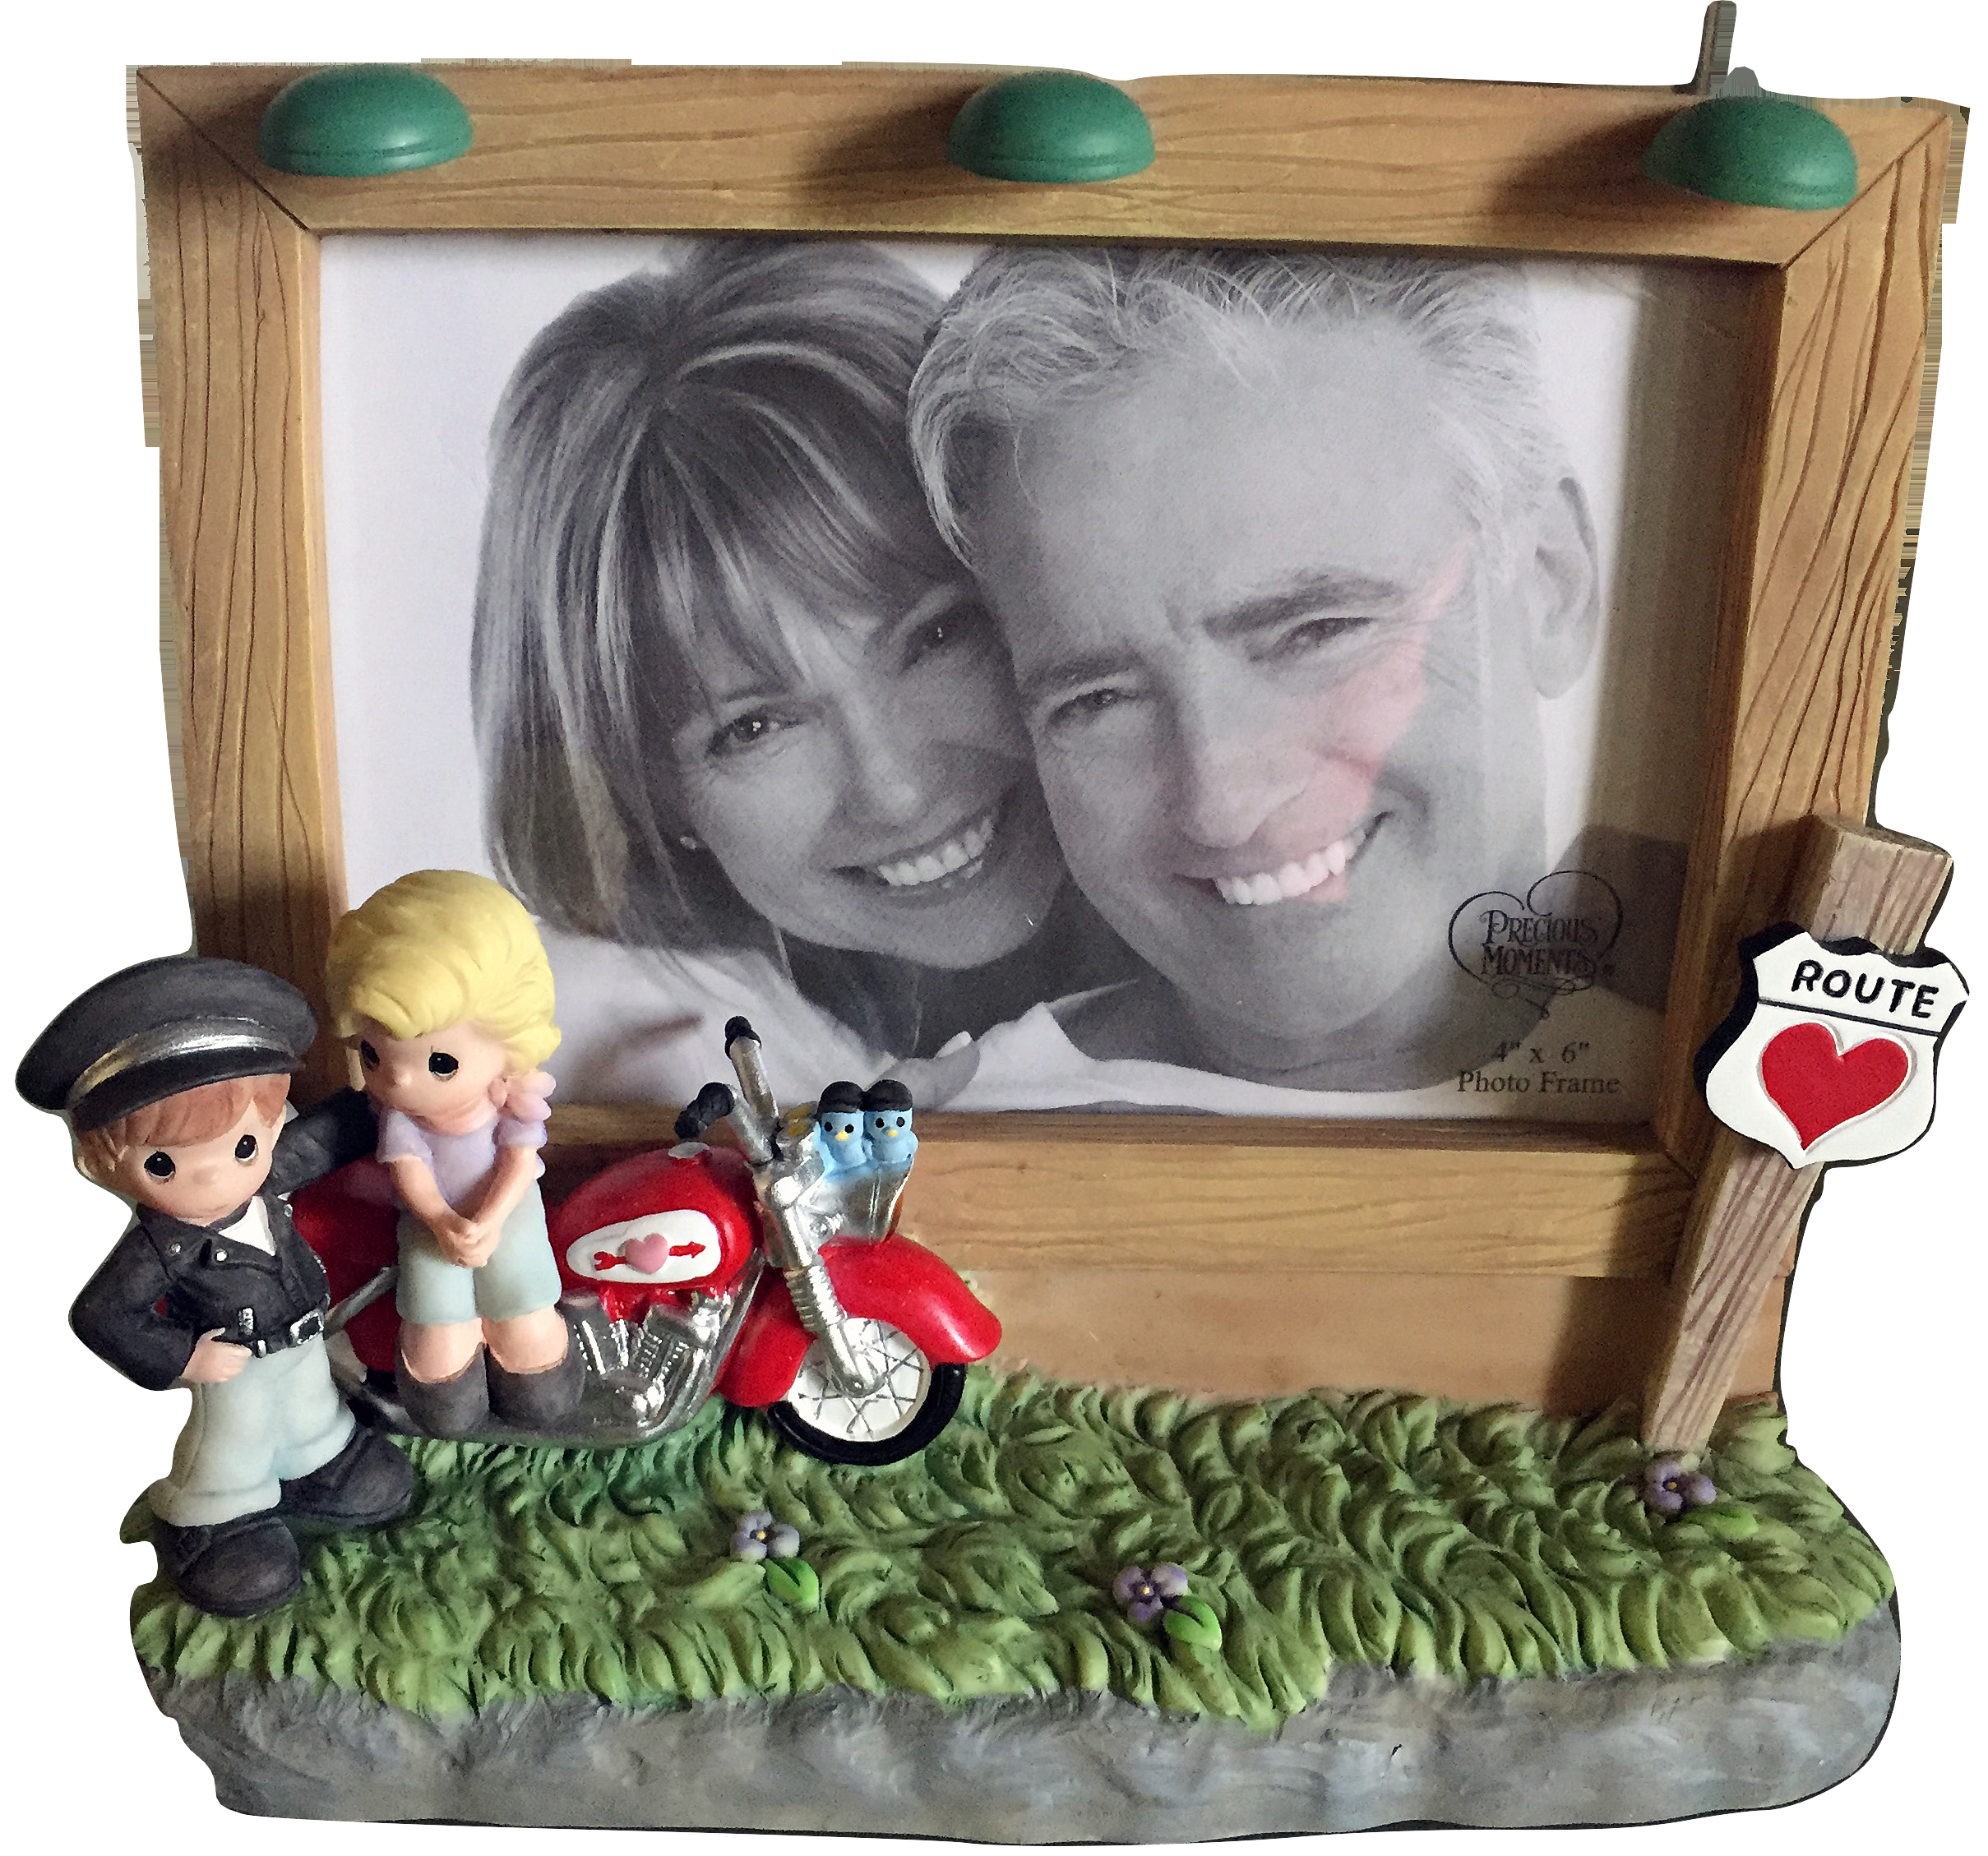 Motorcycle Couple LED Photo Frame